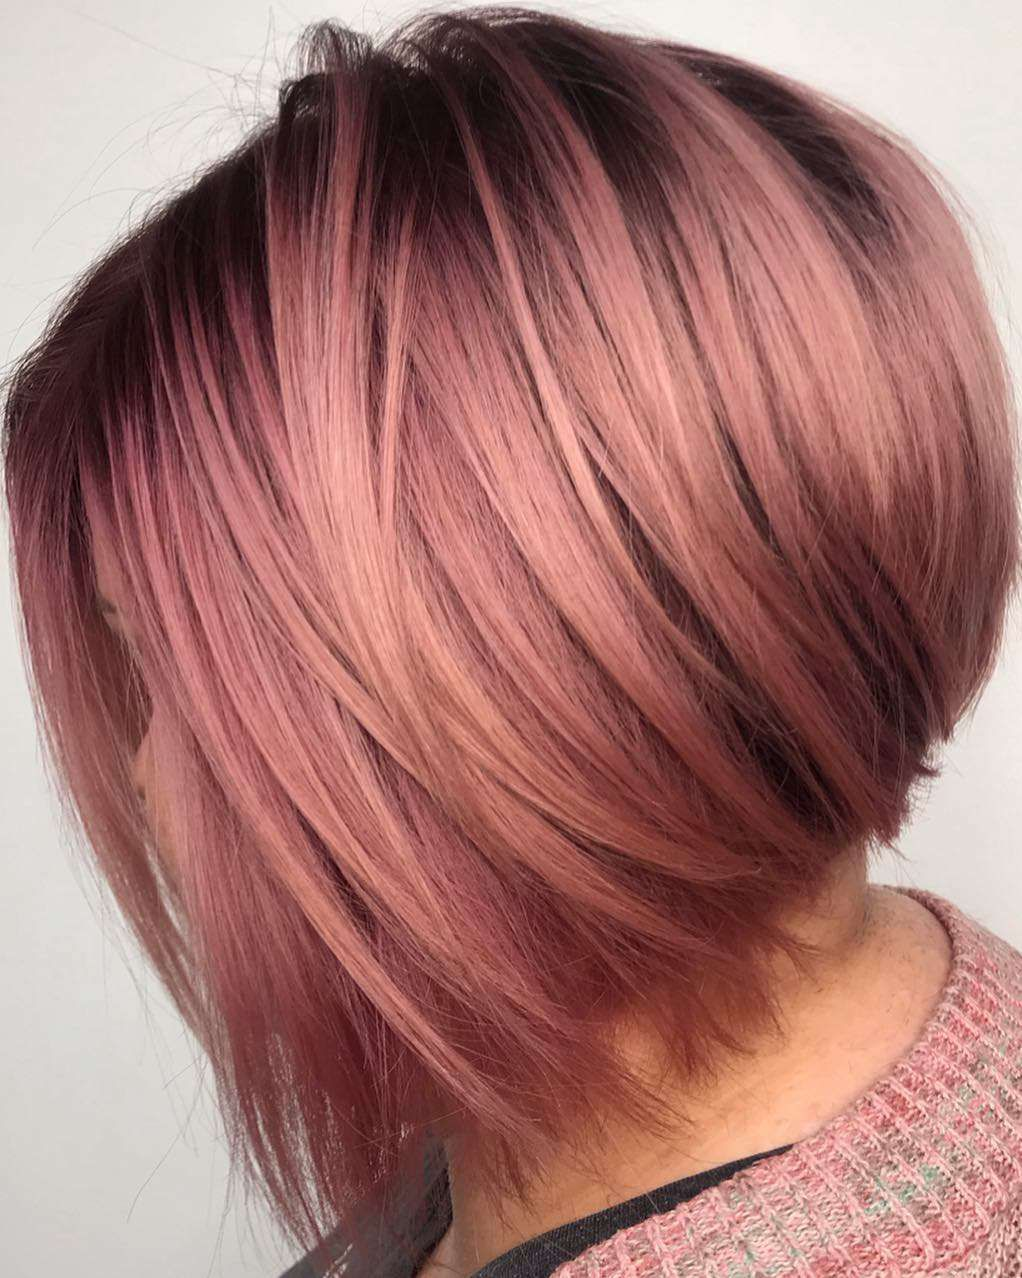 40 New Best Short Haircuts 2018 2019 Best Short Hairstyles Haircuts And Short Hair Ideas Hair Co Short Hair Balayage Popular Hair Color Hair Color Rose Gold